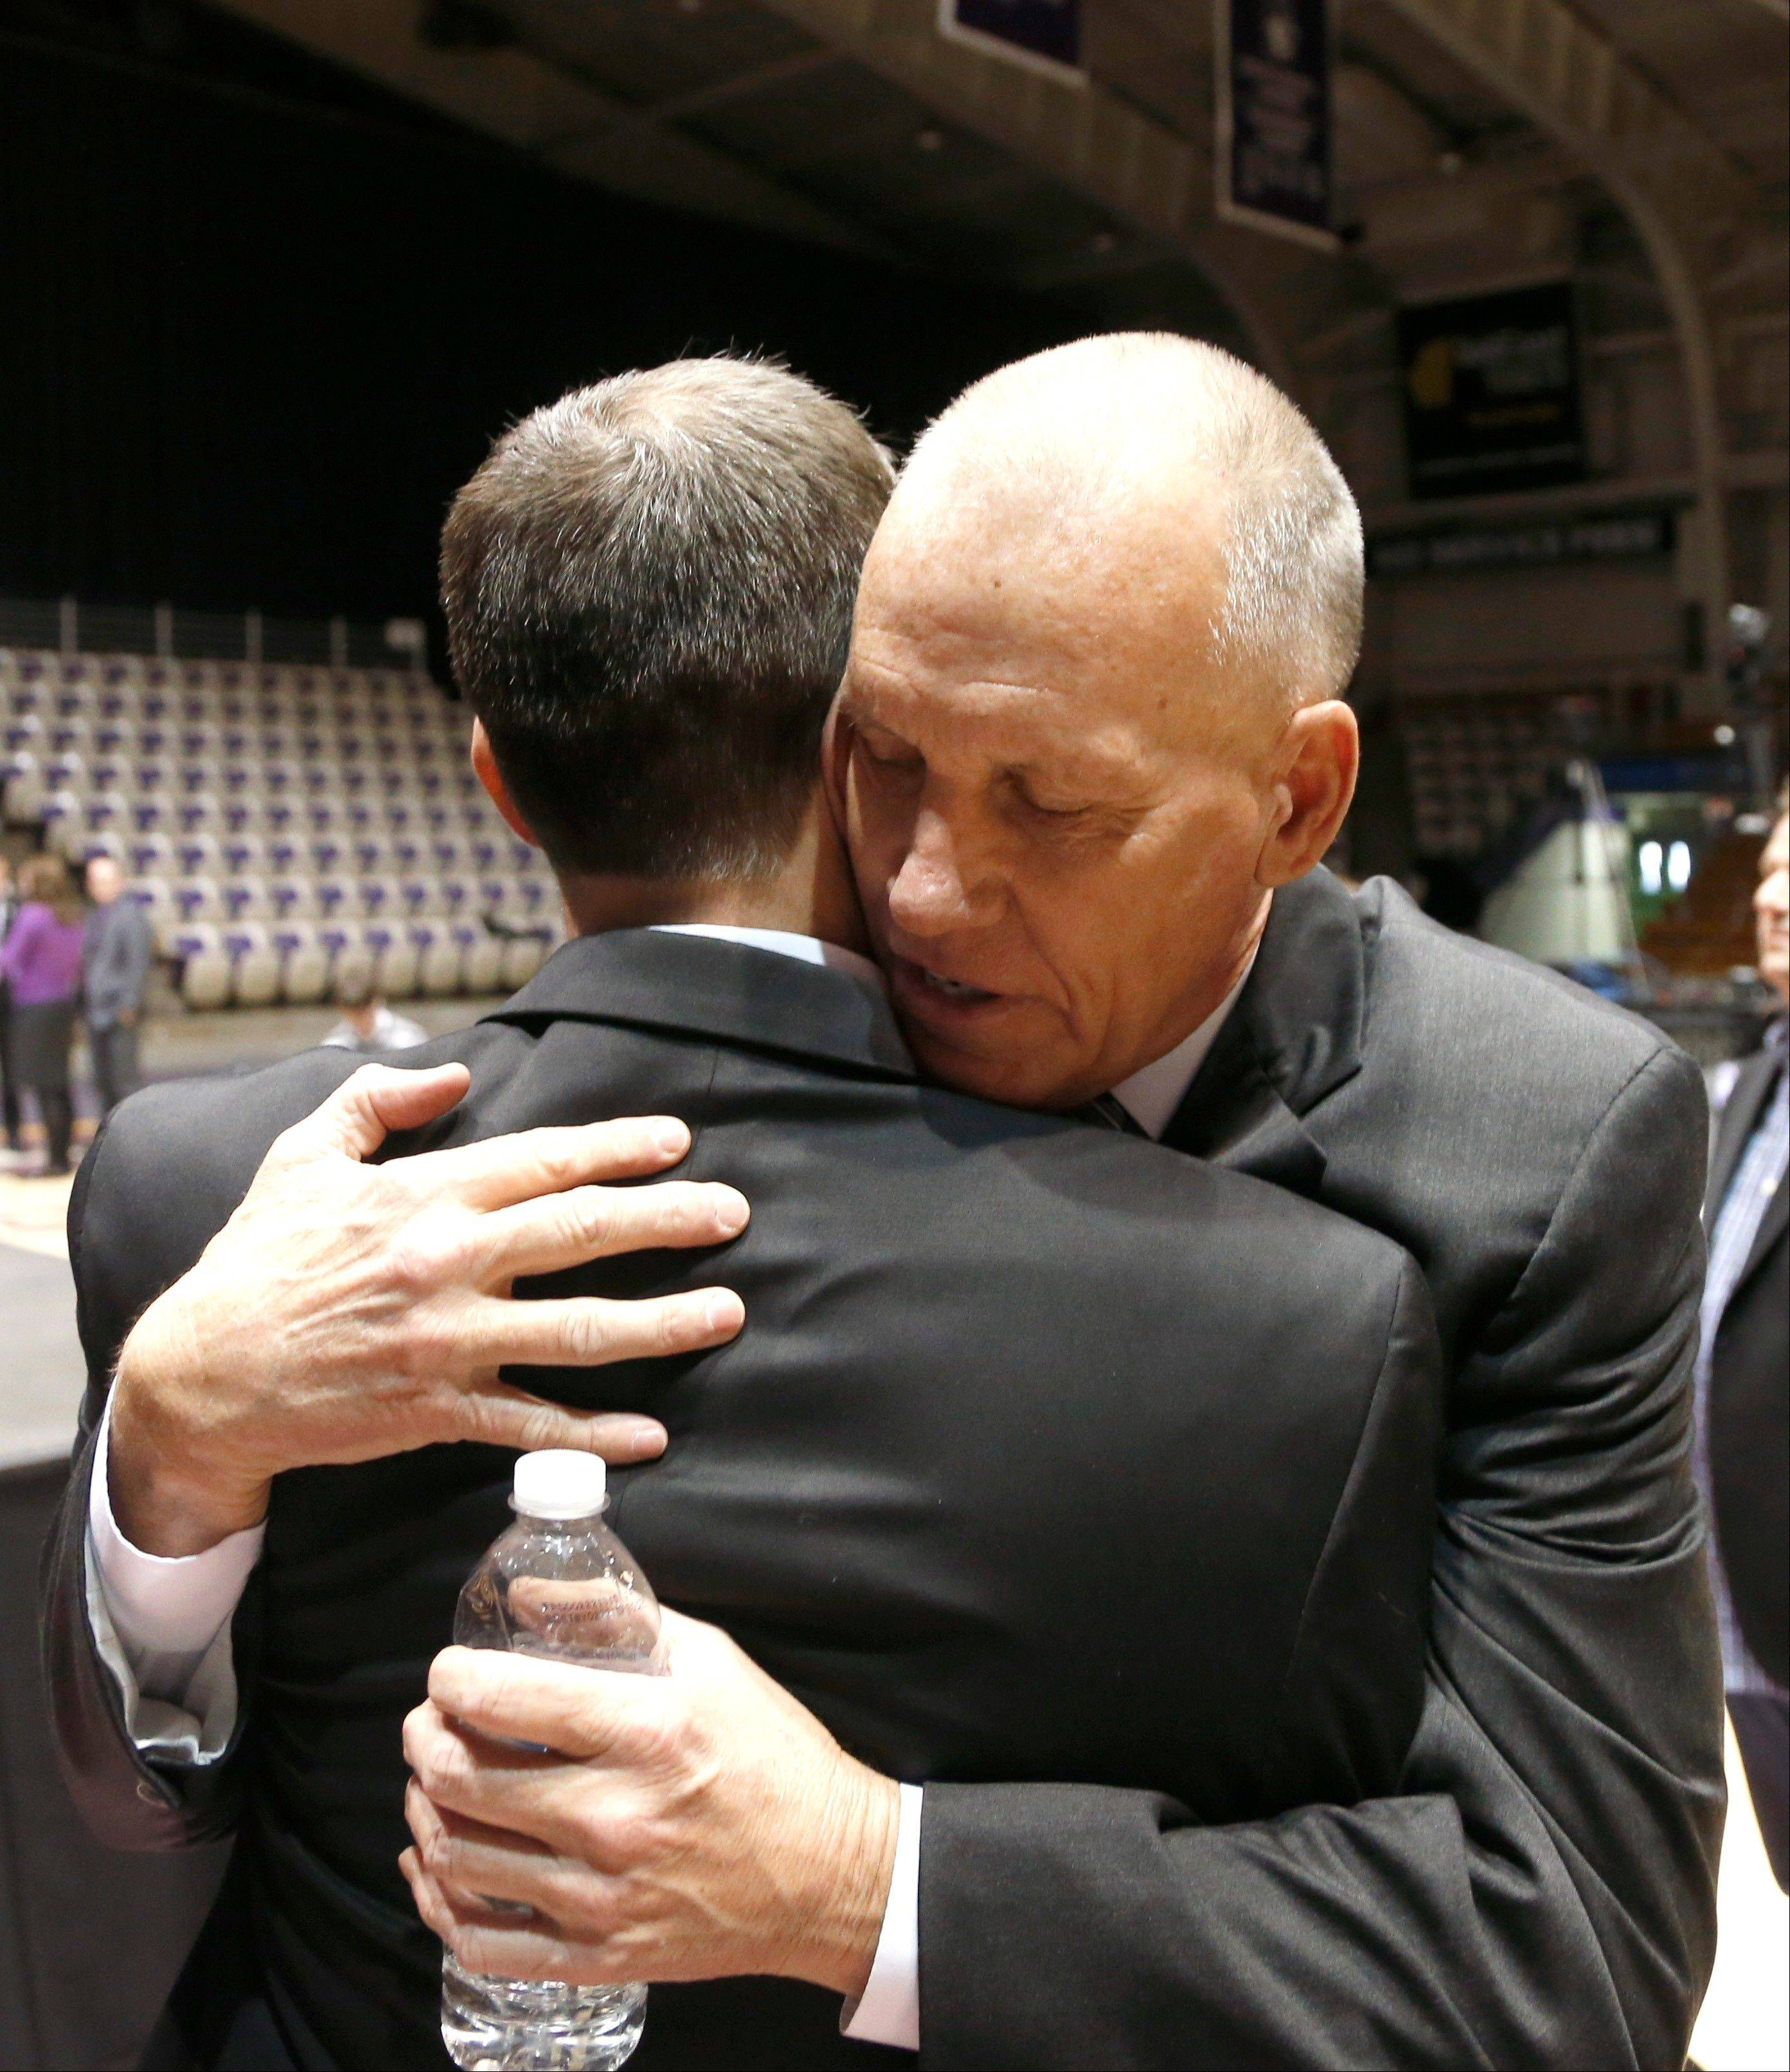 Philadelphia 76ers head coach Doug Collins, right, hugs his son Chris, after Chris was named the new men's head basketball coach at Northwestern University during a news conference Tuesday, April 2, 2013 in Evanston, Ill.